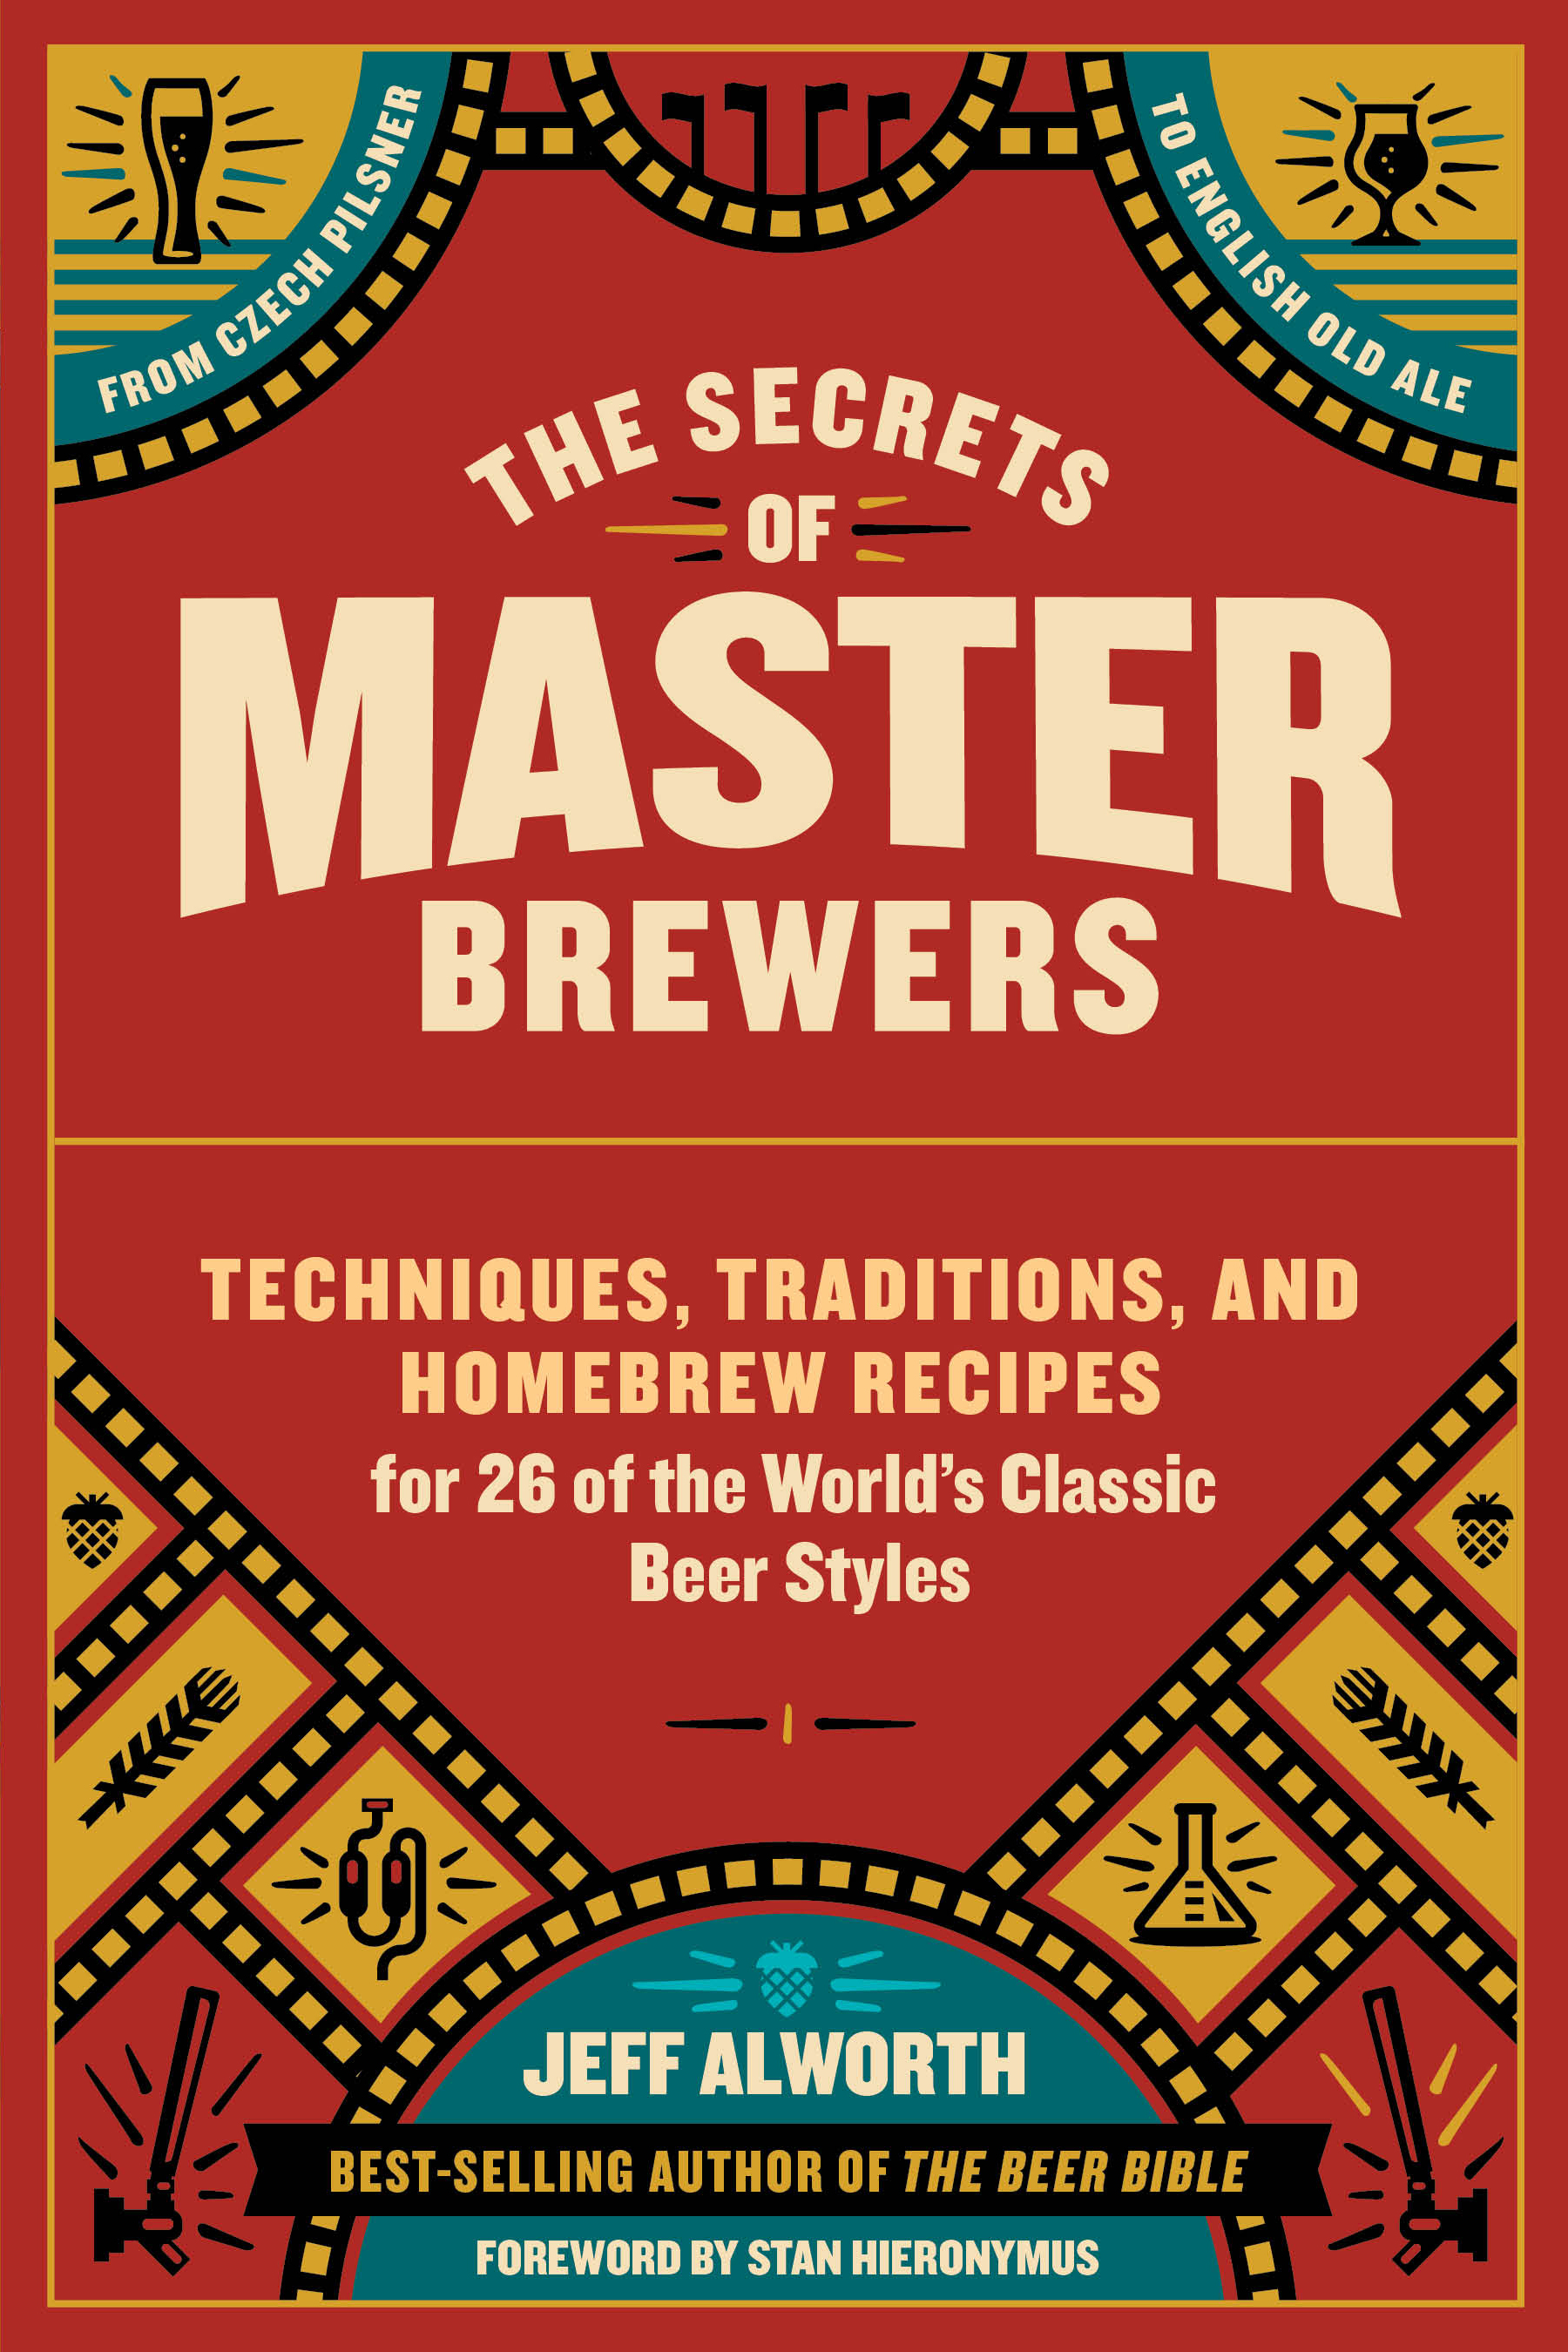 The Secrets of Master Brewers Techniques, Traditions, and Homebrew Recipes for 26 of the World's Classic Beer Styles, from Czech Pilsner to English Old Ale - Jeff Alworth